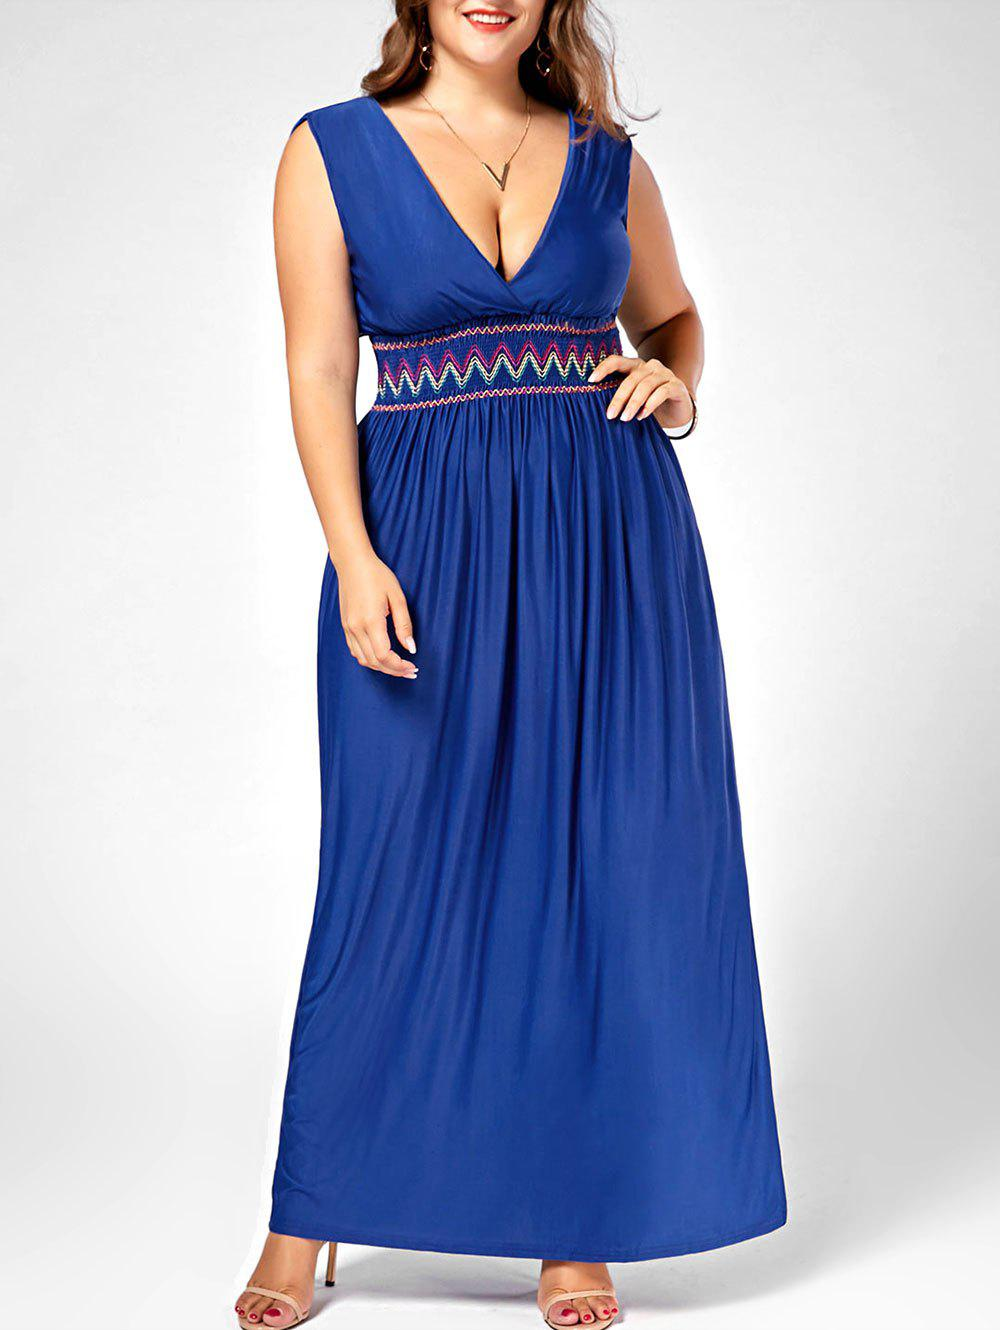 40% OFF] Plus Size Plunging Neckline Maxi Party Dress | Rosegal